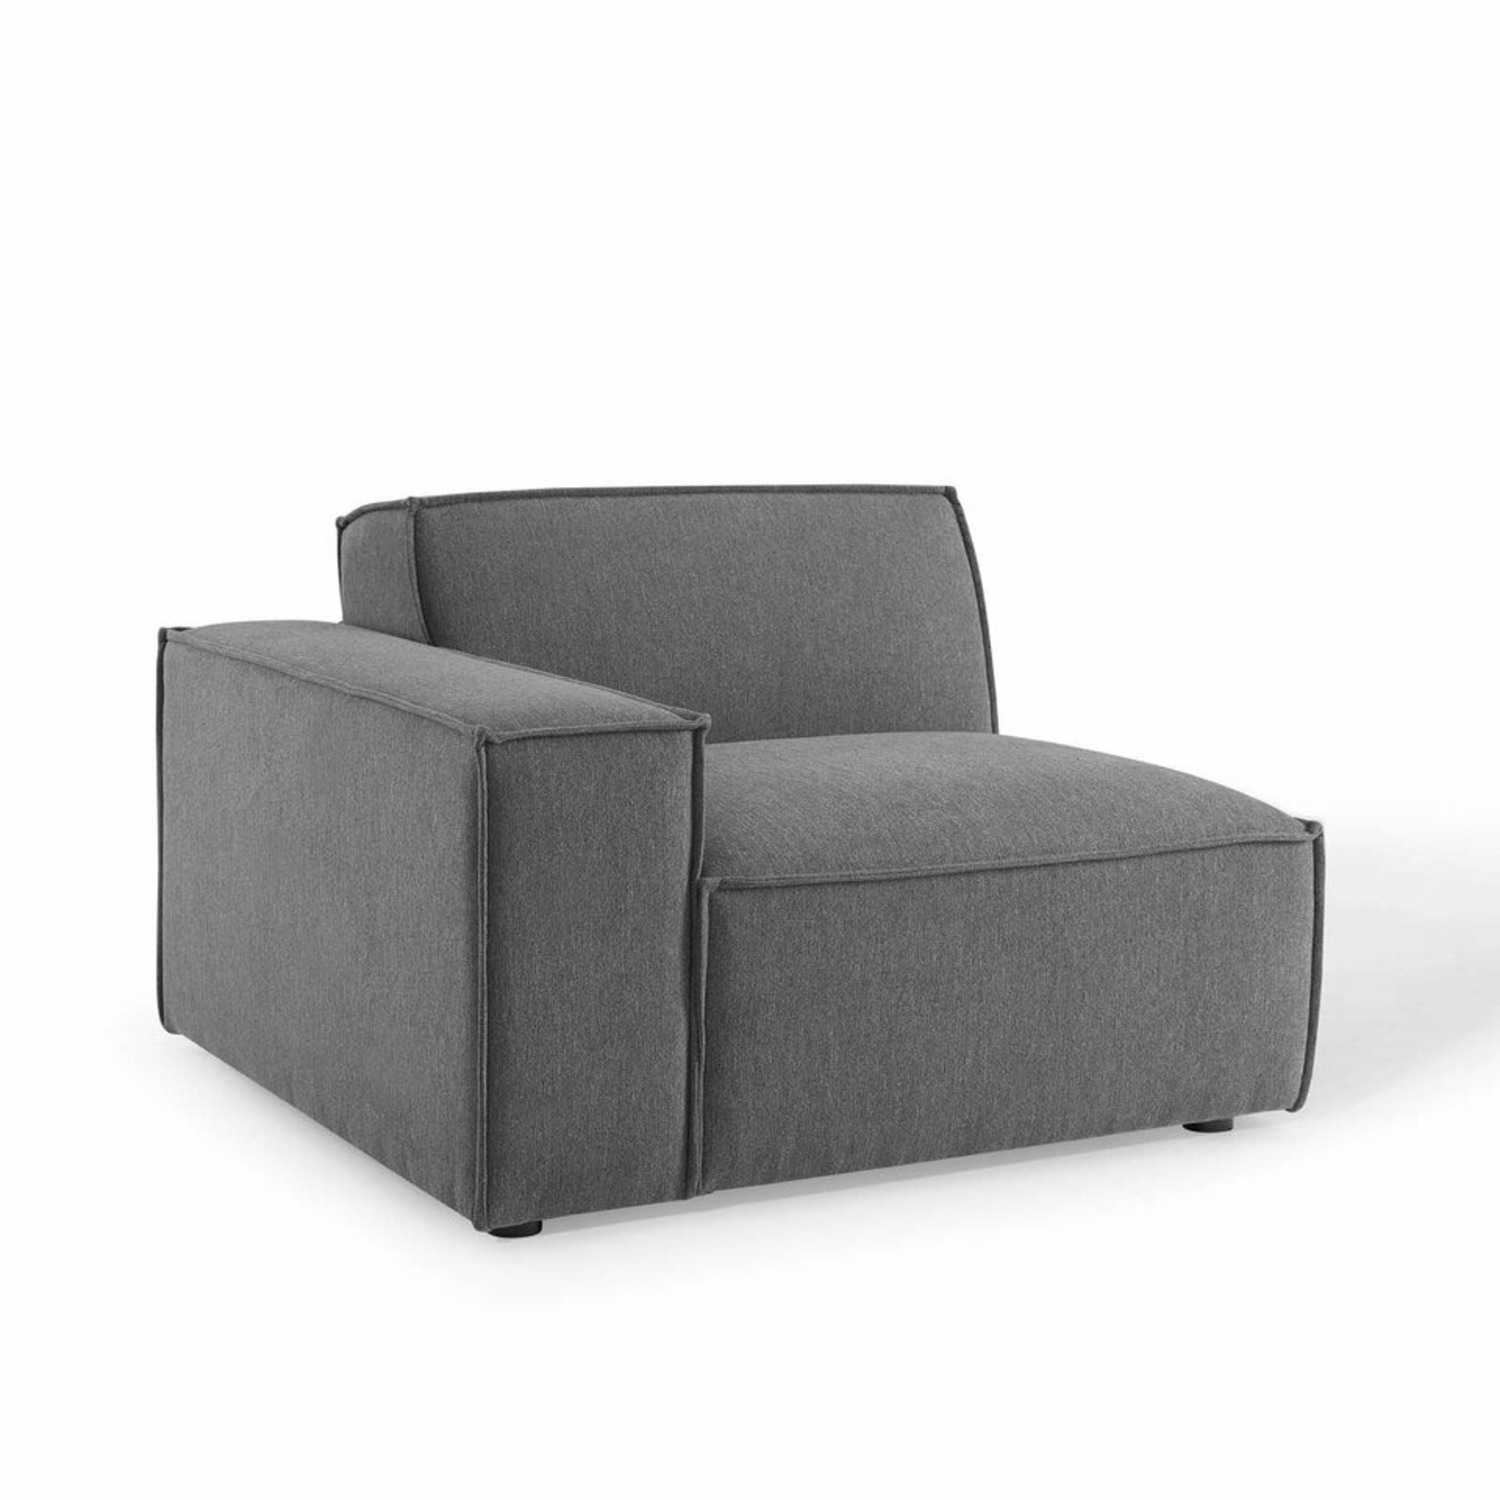 6Piece Sectional Sofa In Charcoal Polyester Fabric - image-4